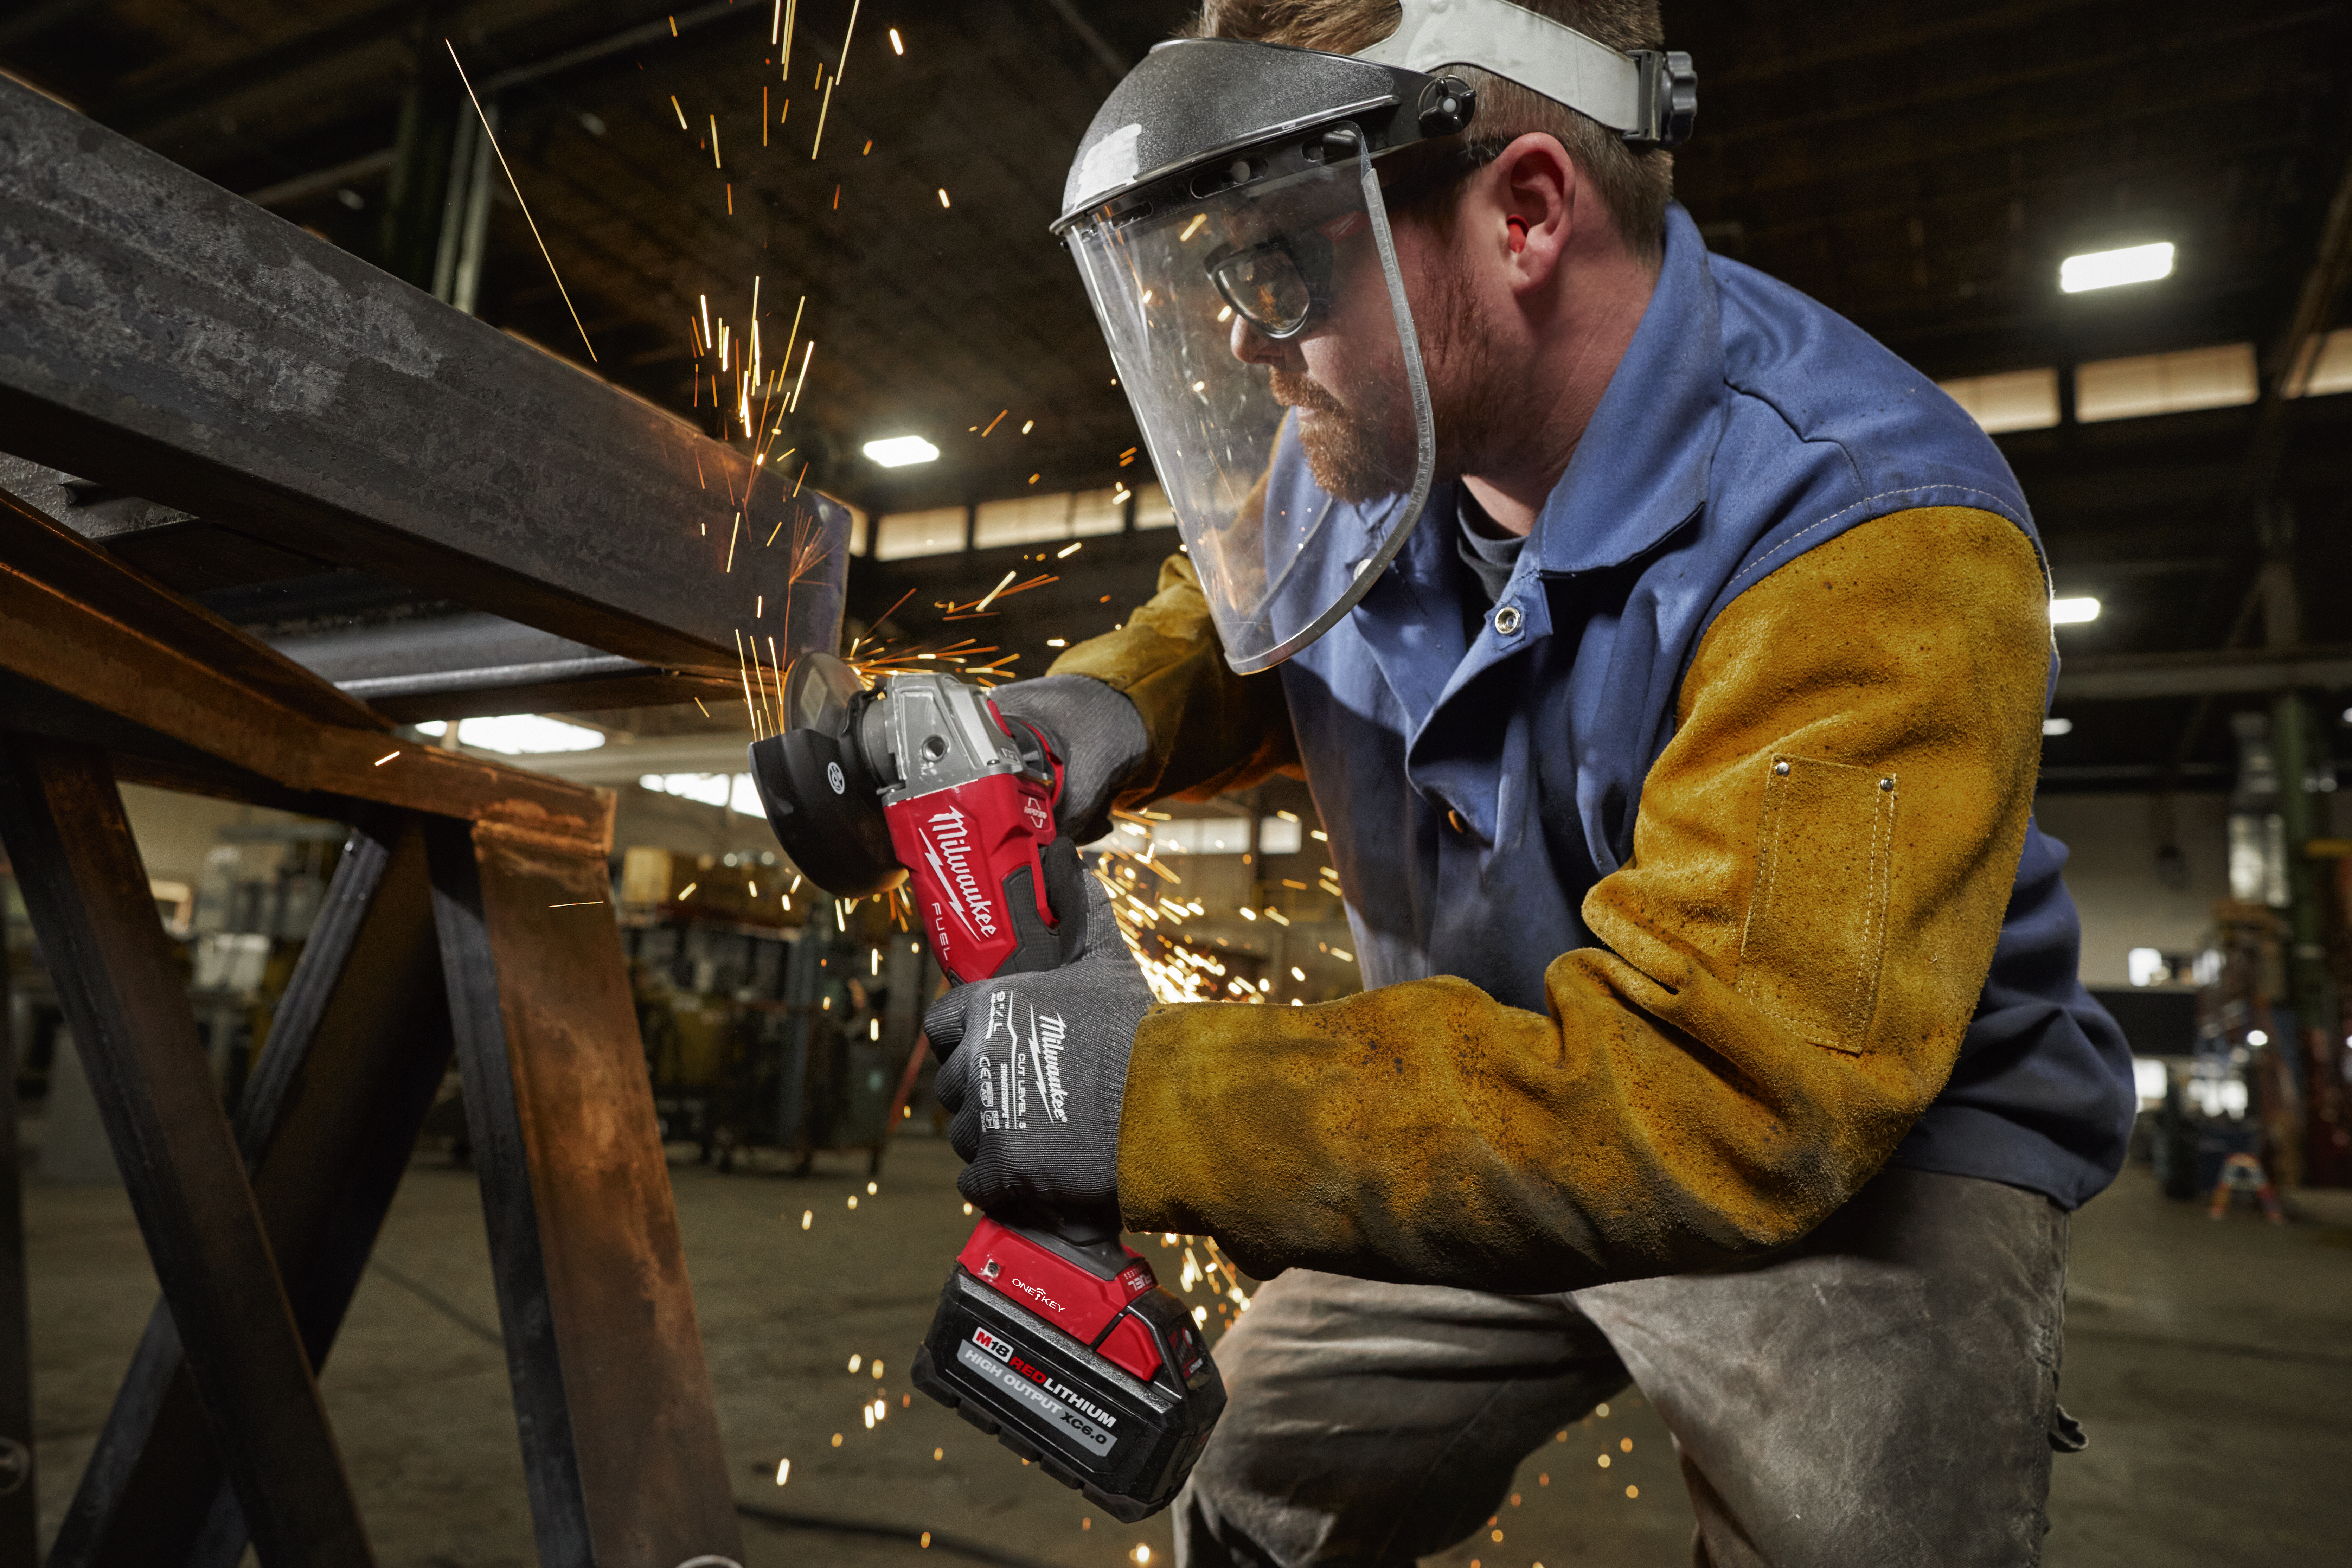 A metalworker utilizes a Milwaukee grinder that is compatible with the One-Key app